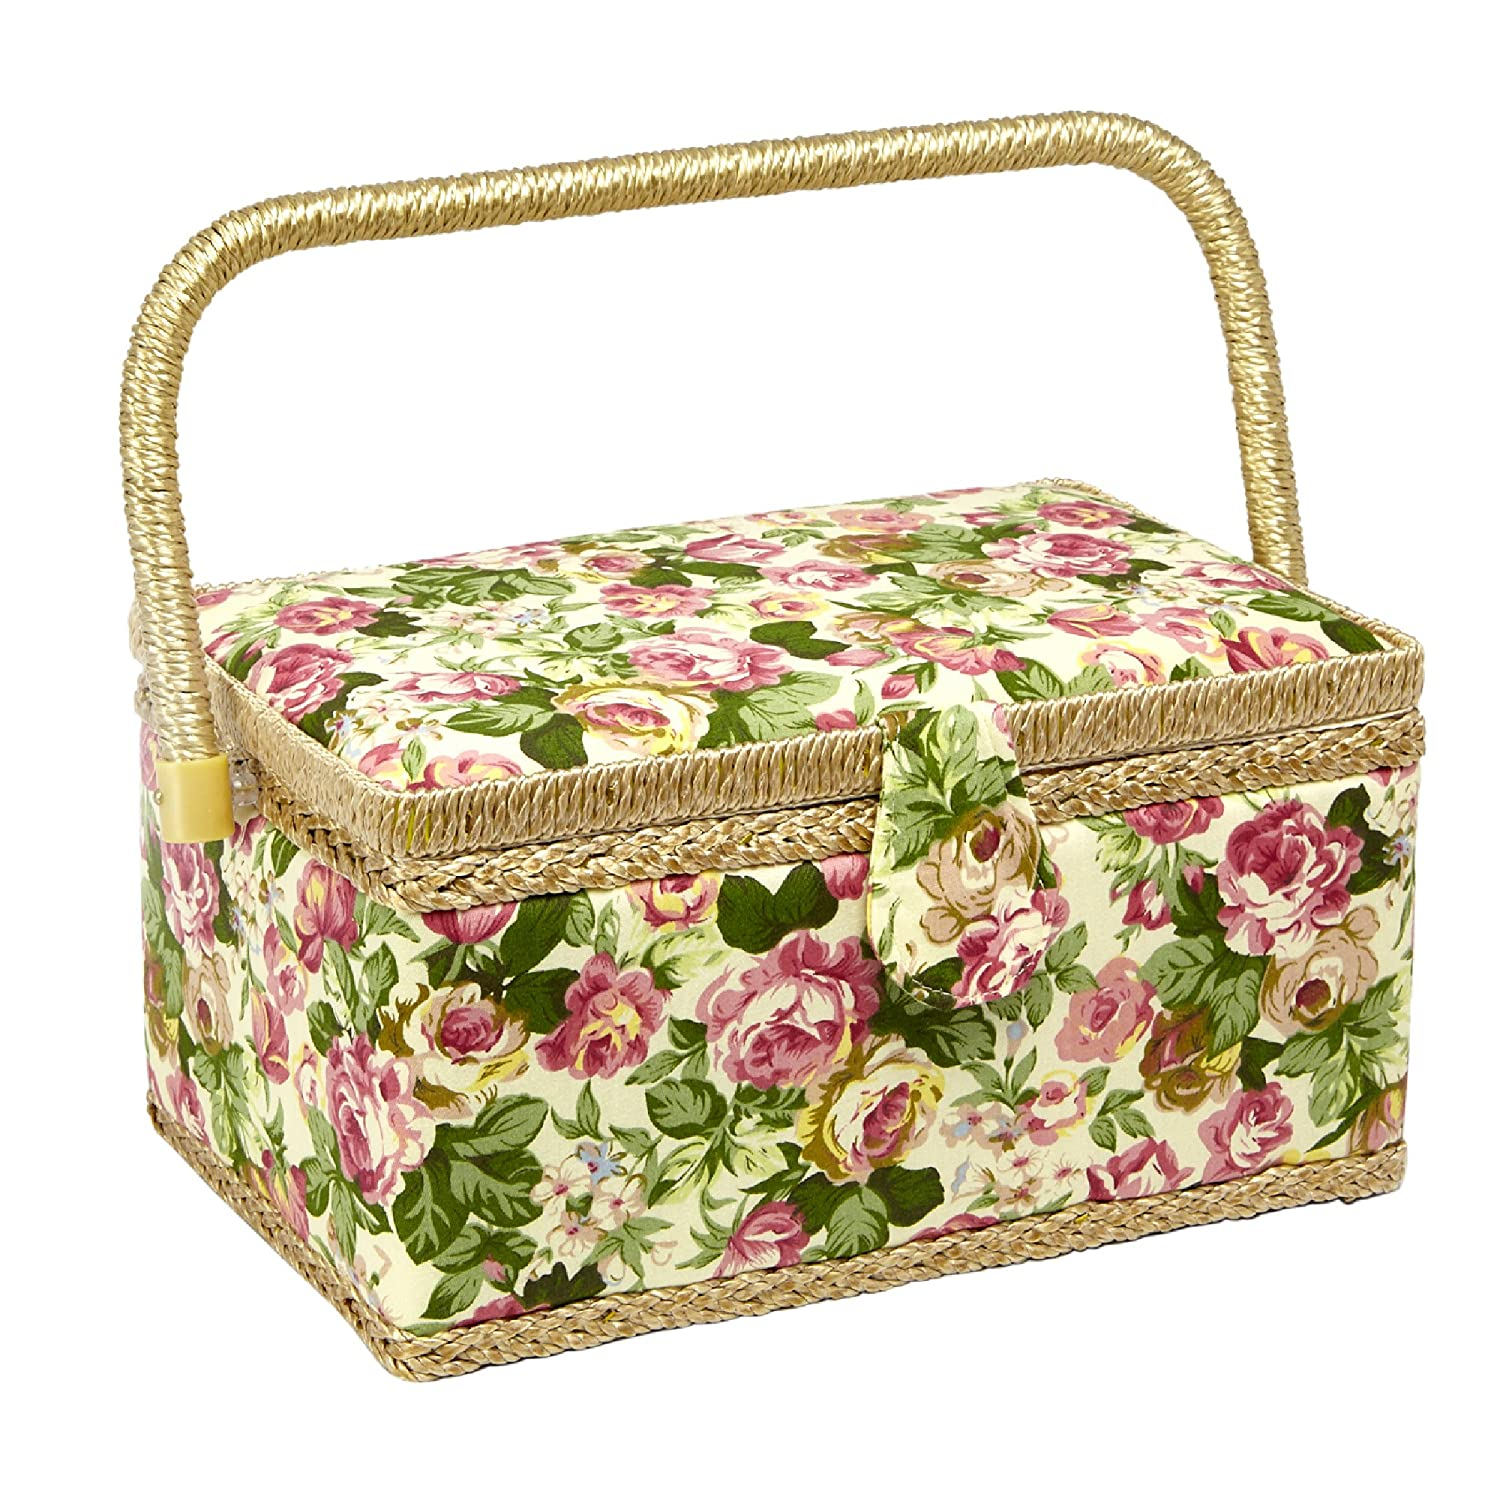 Sewing Basket with Tulip Floral Print Design- Sewing Kit Storage Box with Removable Tray, Built-In Pin Cushion and Interior Pocket - Medium - 11